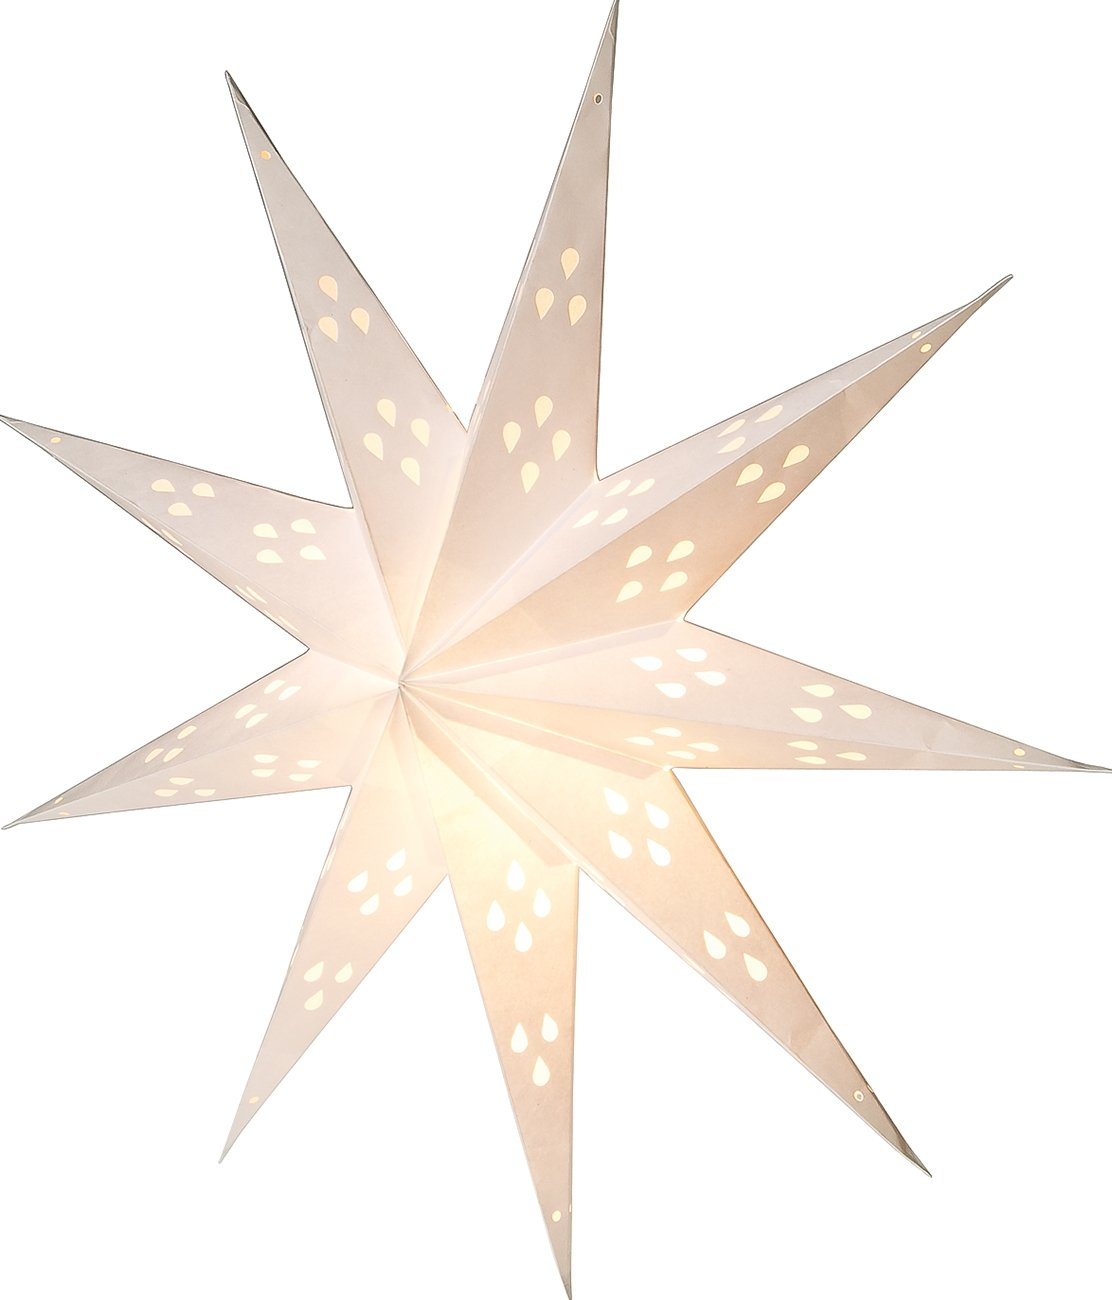 Luna Bazaar Paper Star Lantern (24-Inch, White, Nova Design) - For Home Decor, Parties, and Holiday Decorations